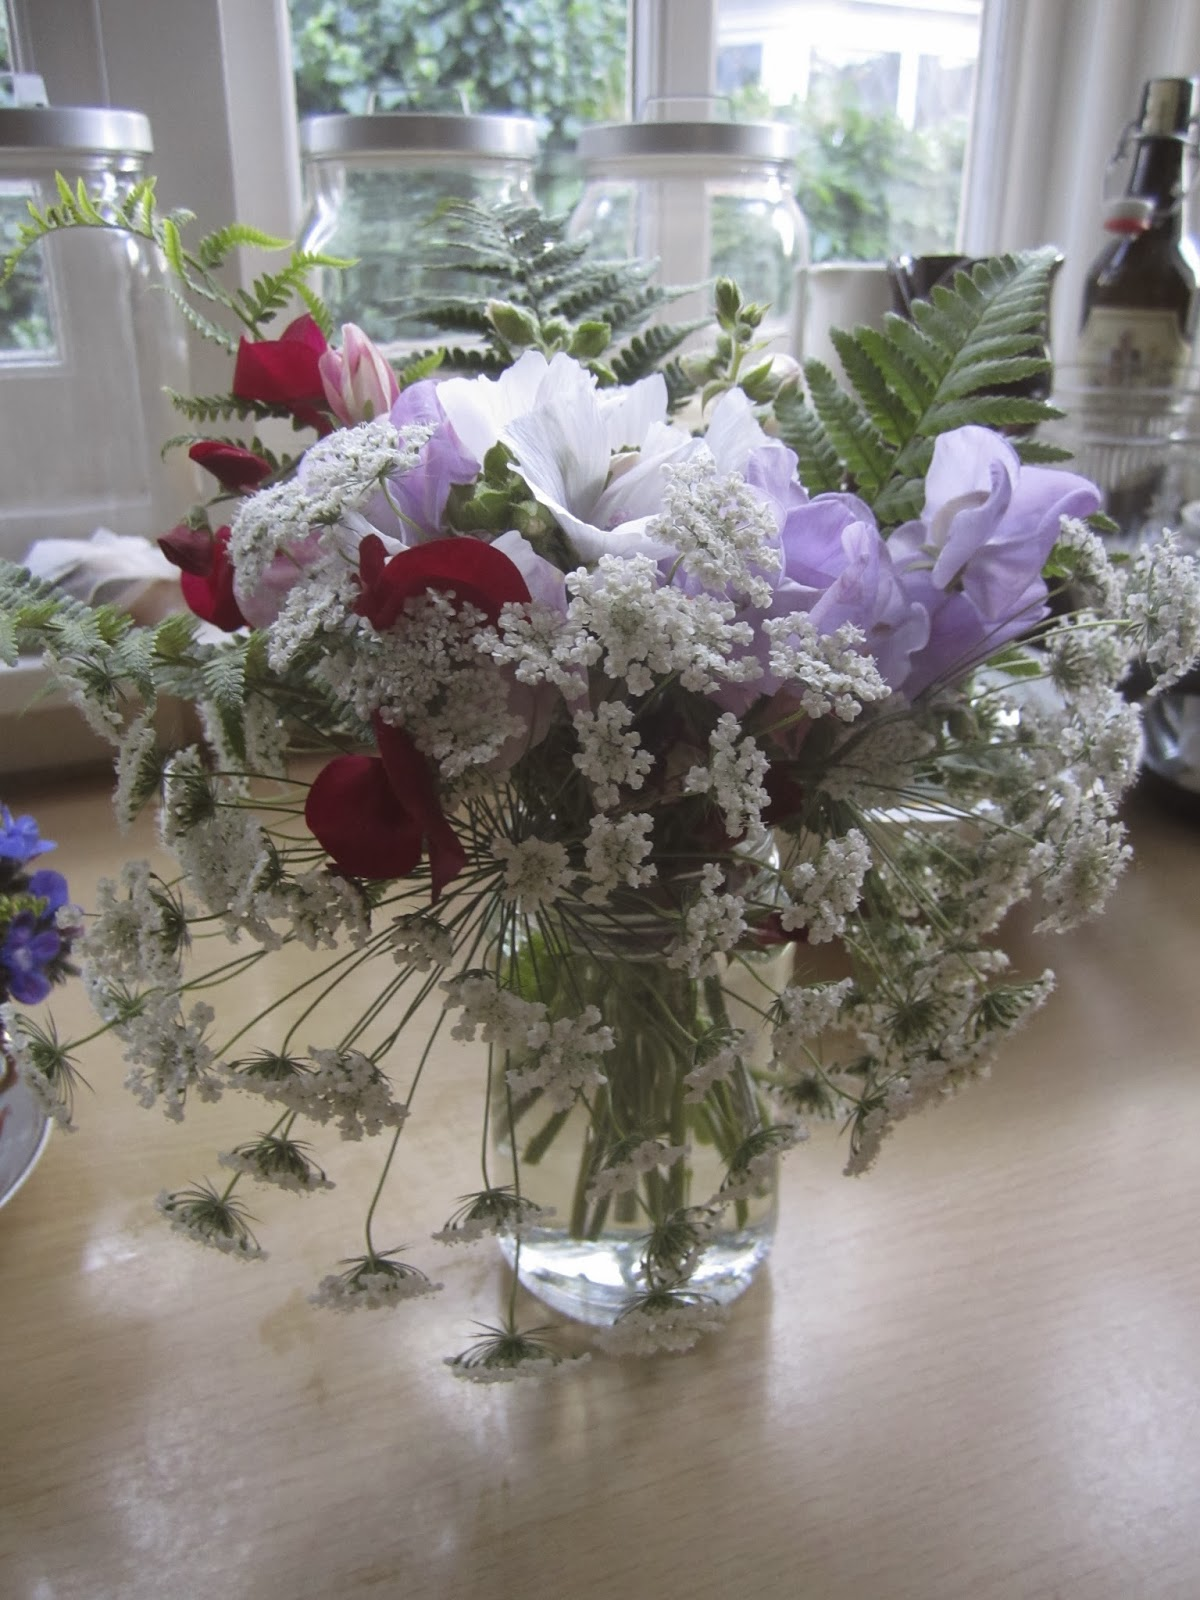 Lovely, natural table centrepiece.